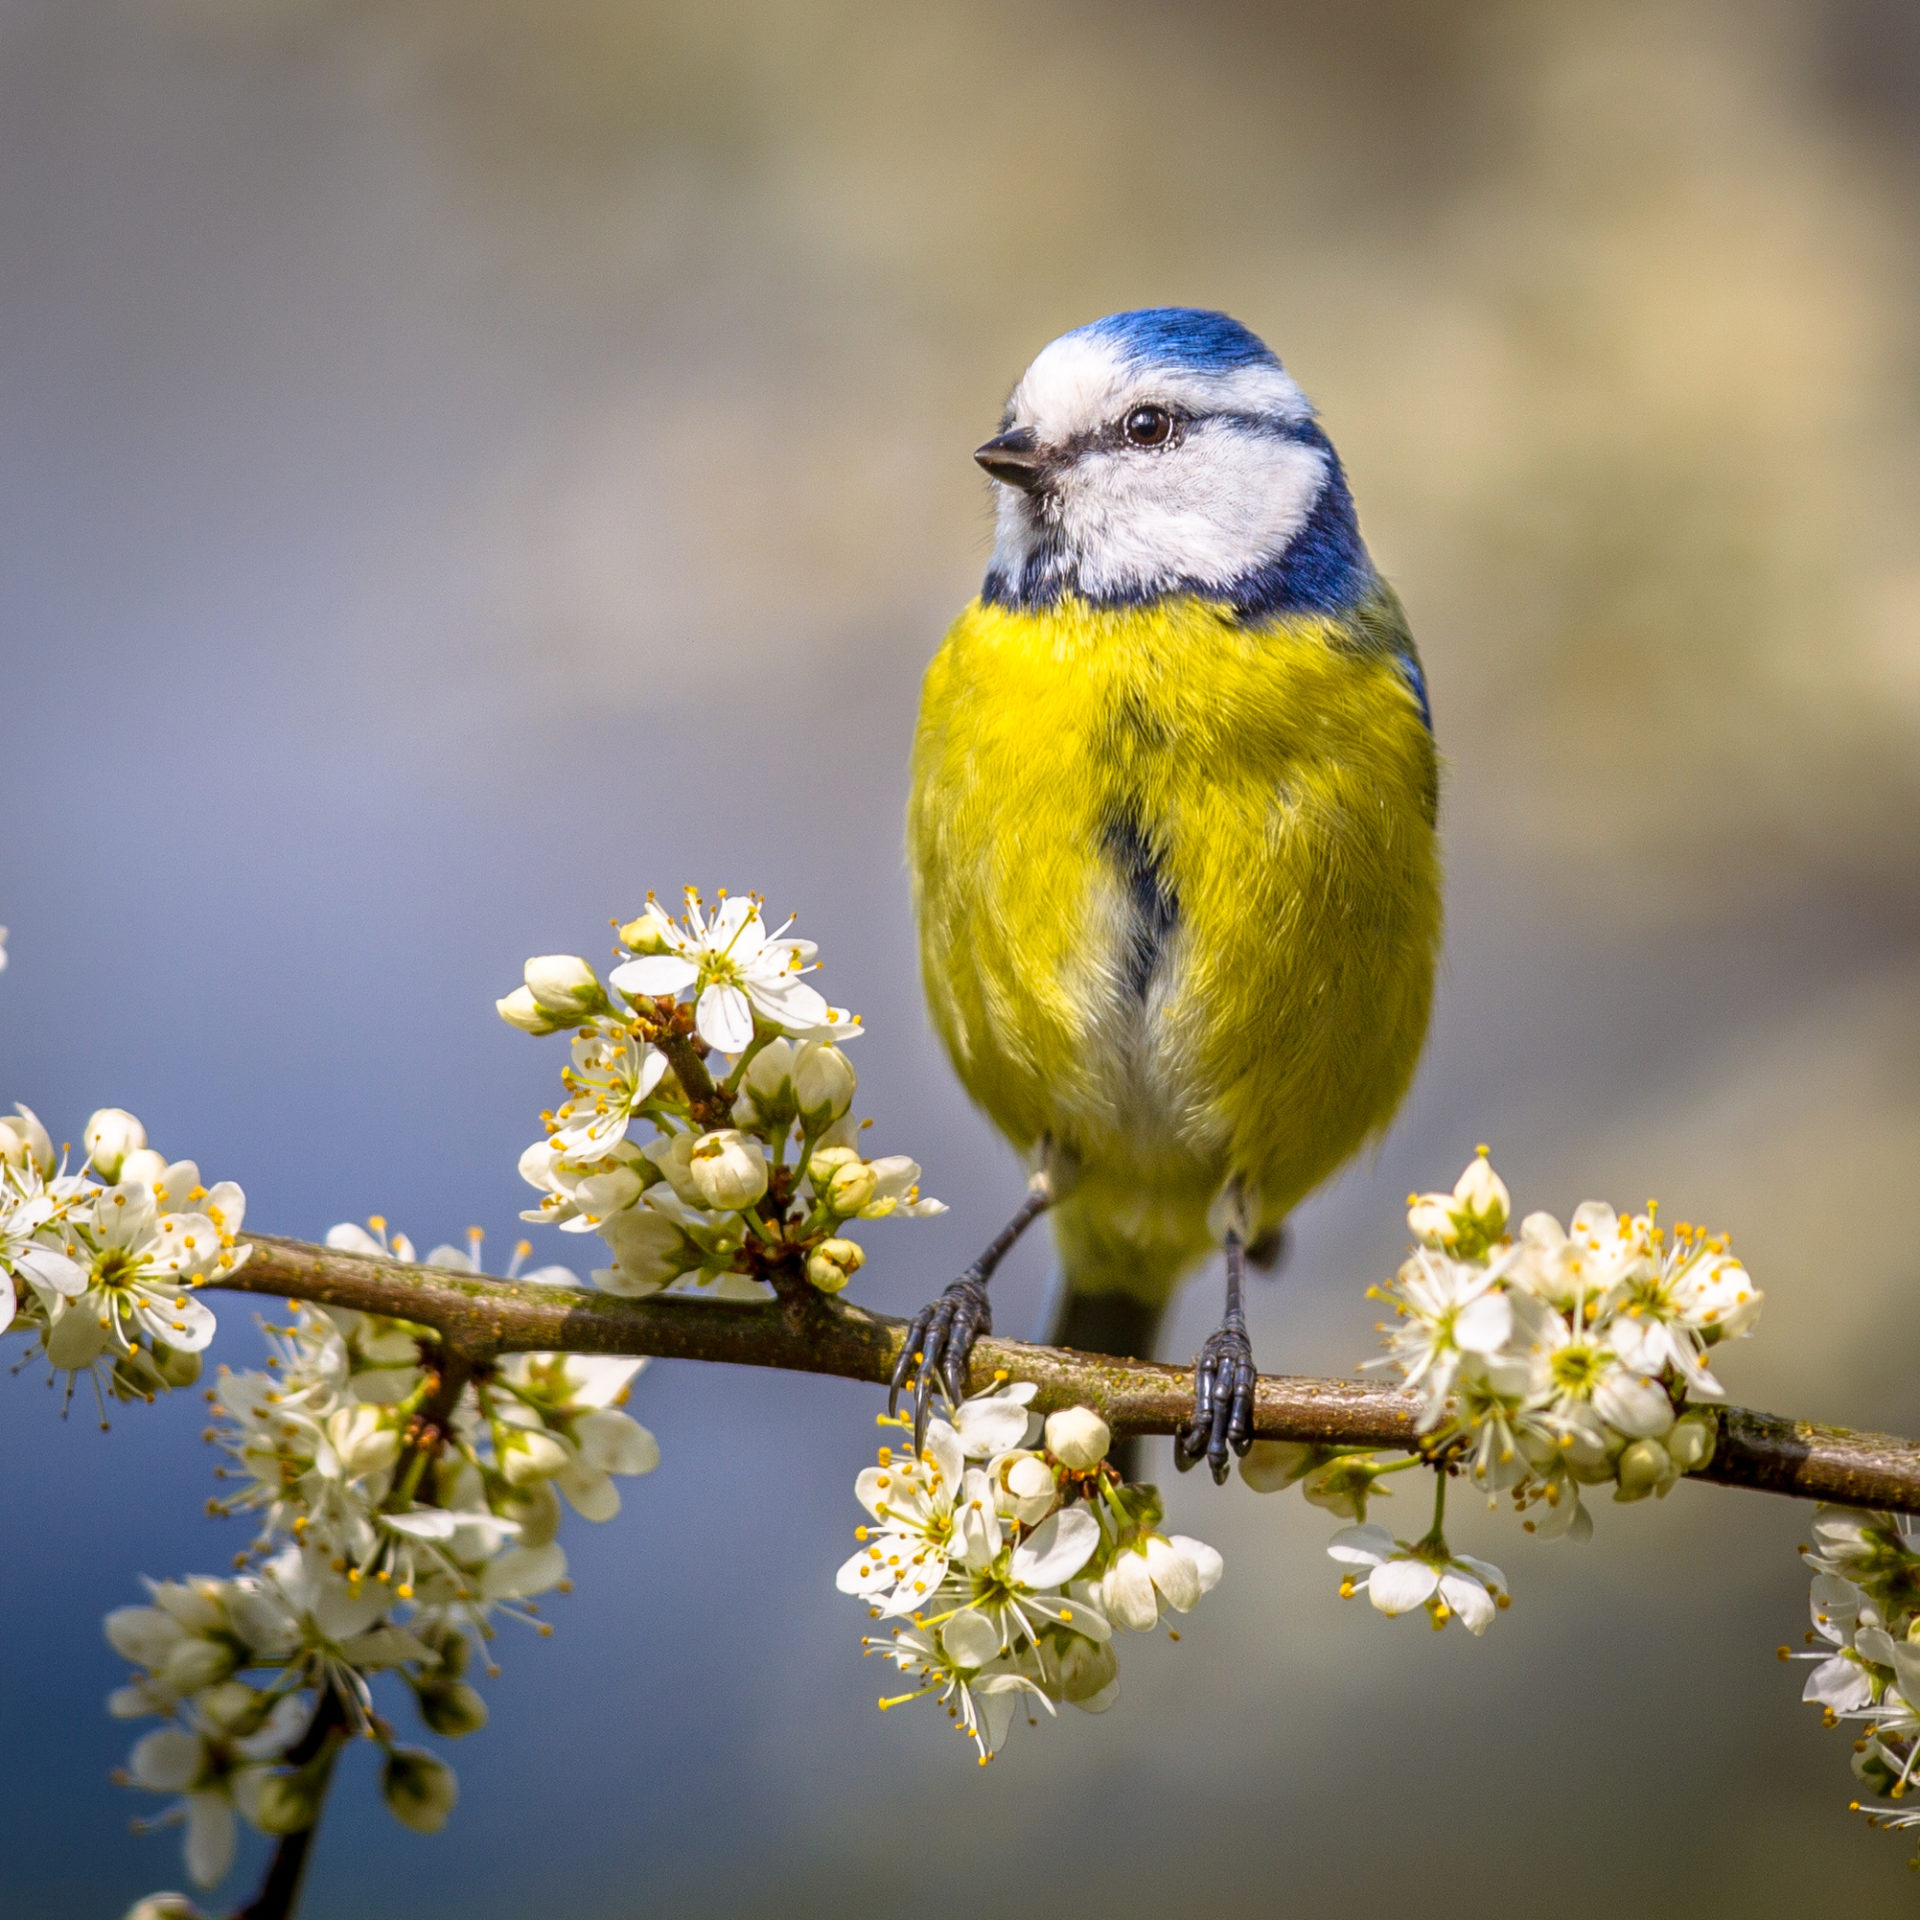 Bluetit on a hawthorn branch